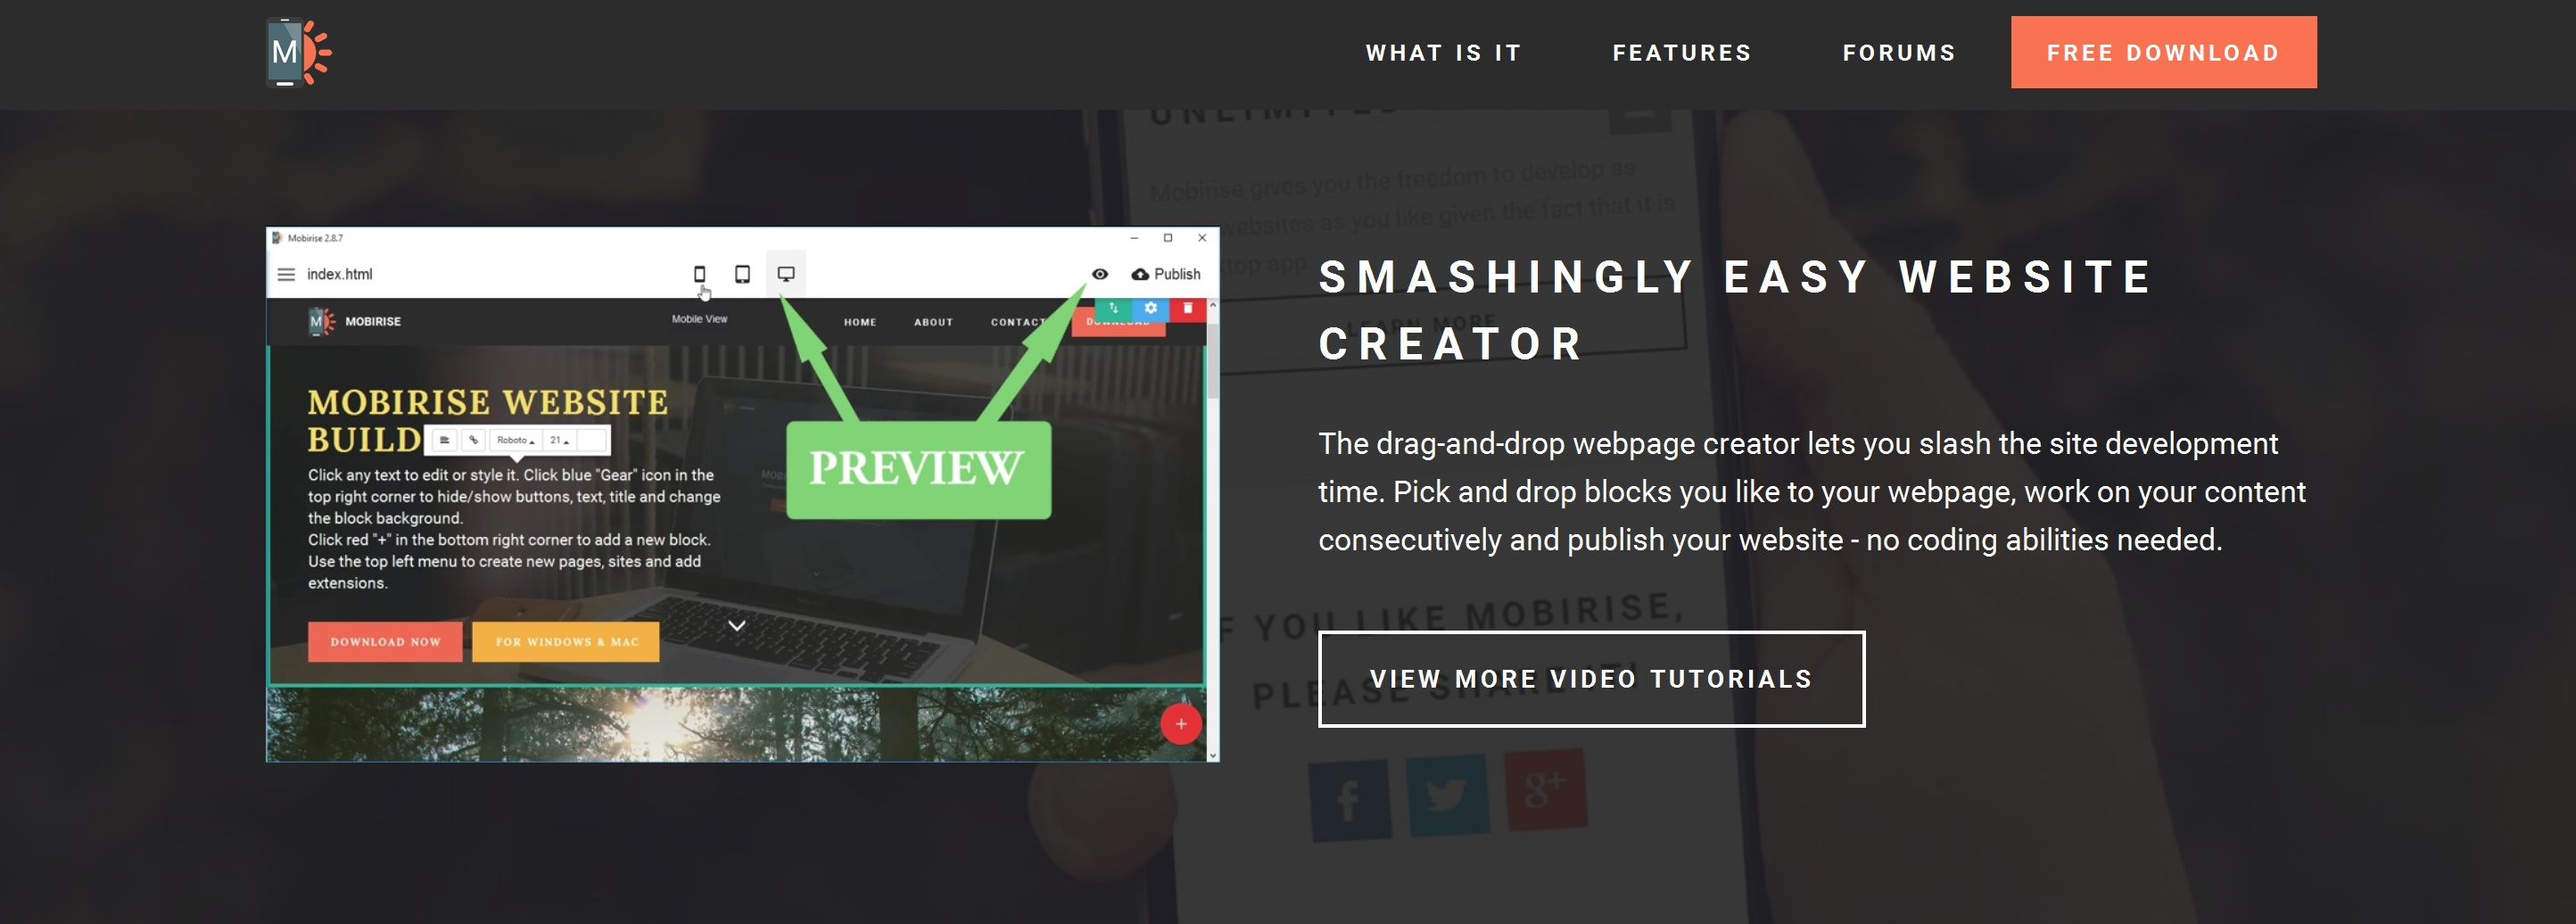 WYSIWYG Web Page  Creator Review